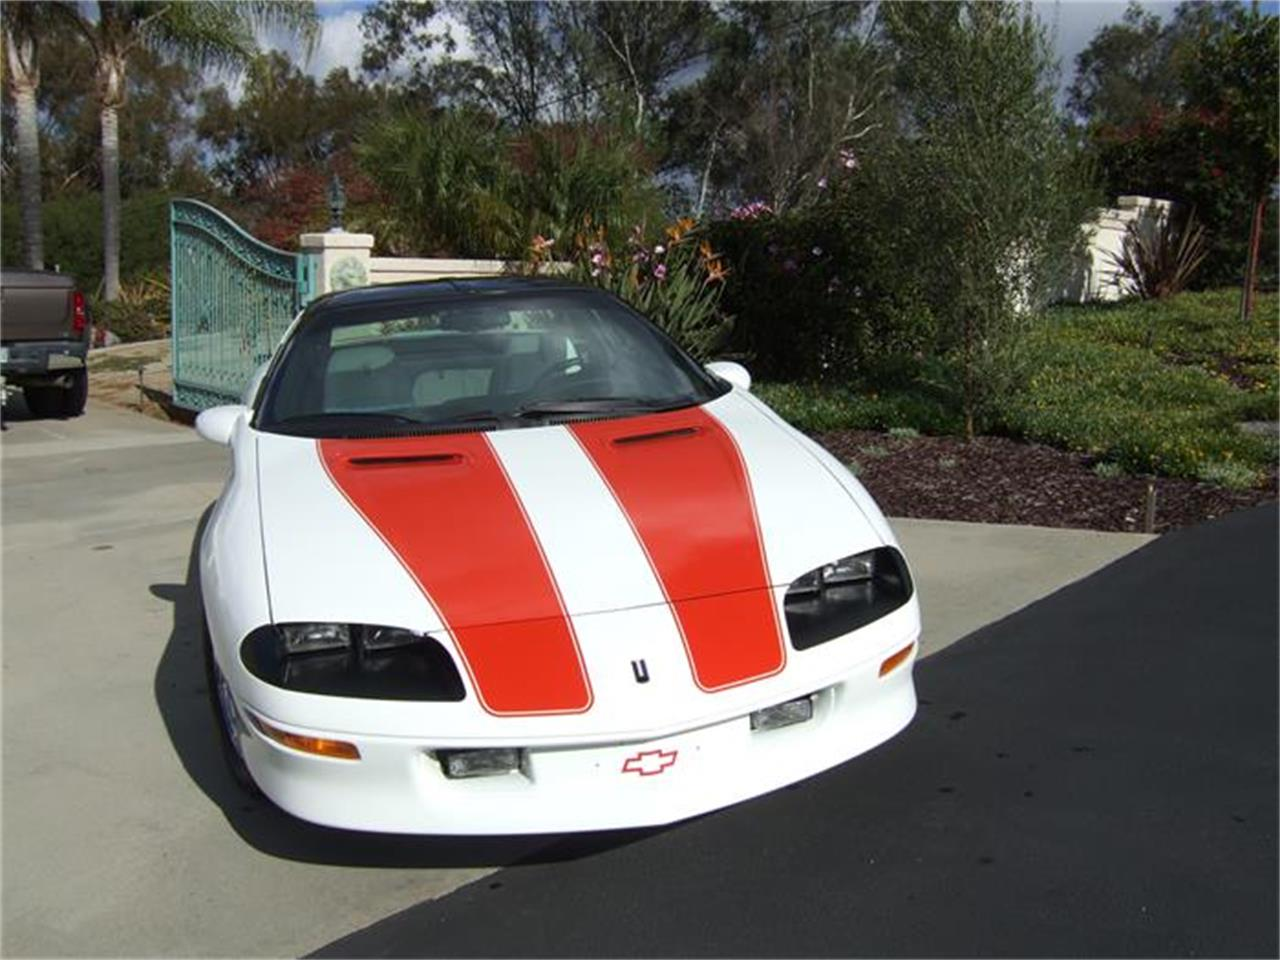 Large Picture of '97 Chevrolet Camaro Z28 located in California Offered by a Private Seller - B1LI